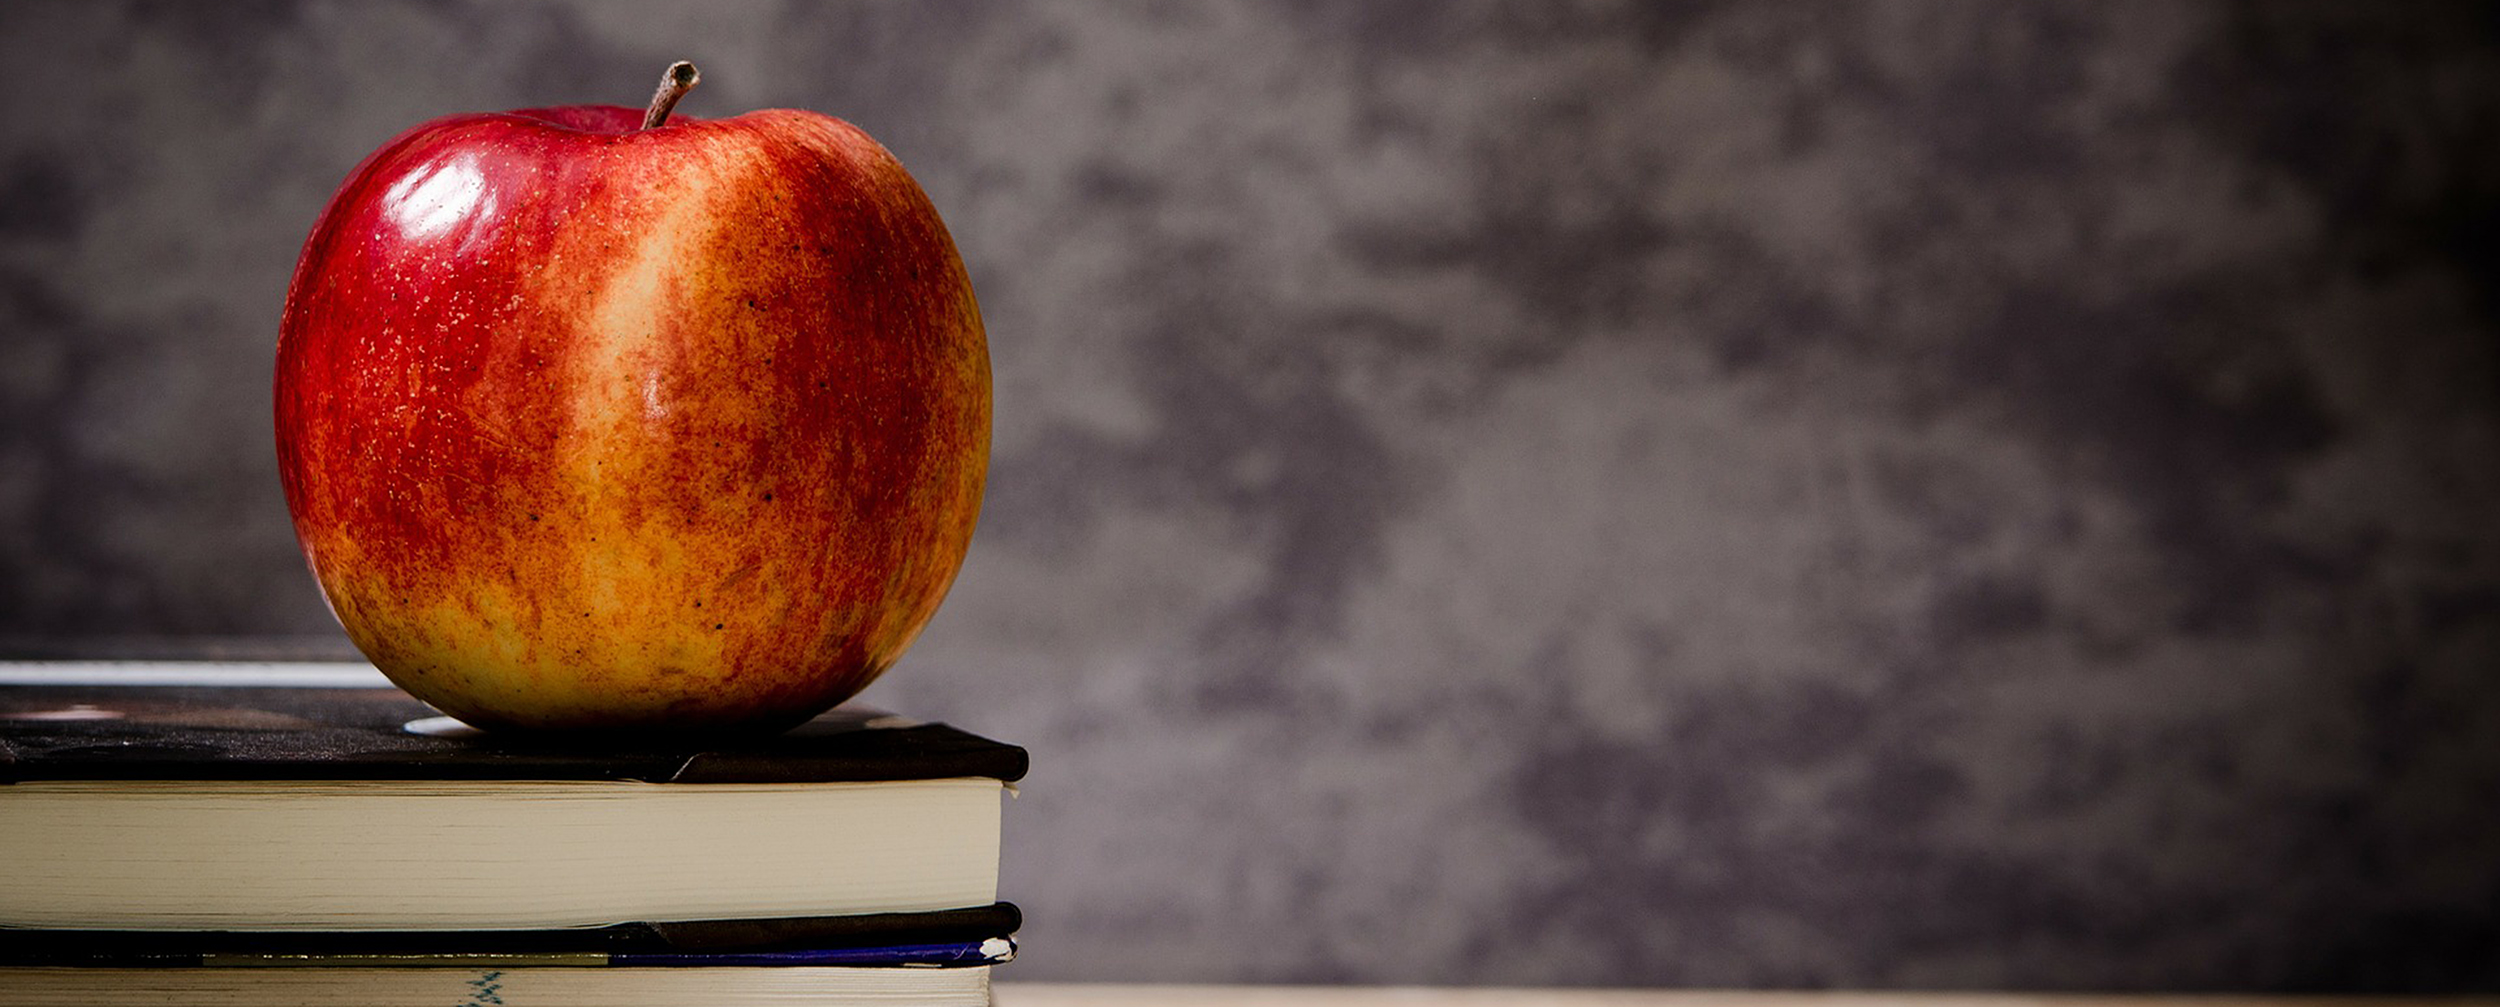 Image of an apple on a textbook